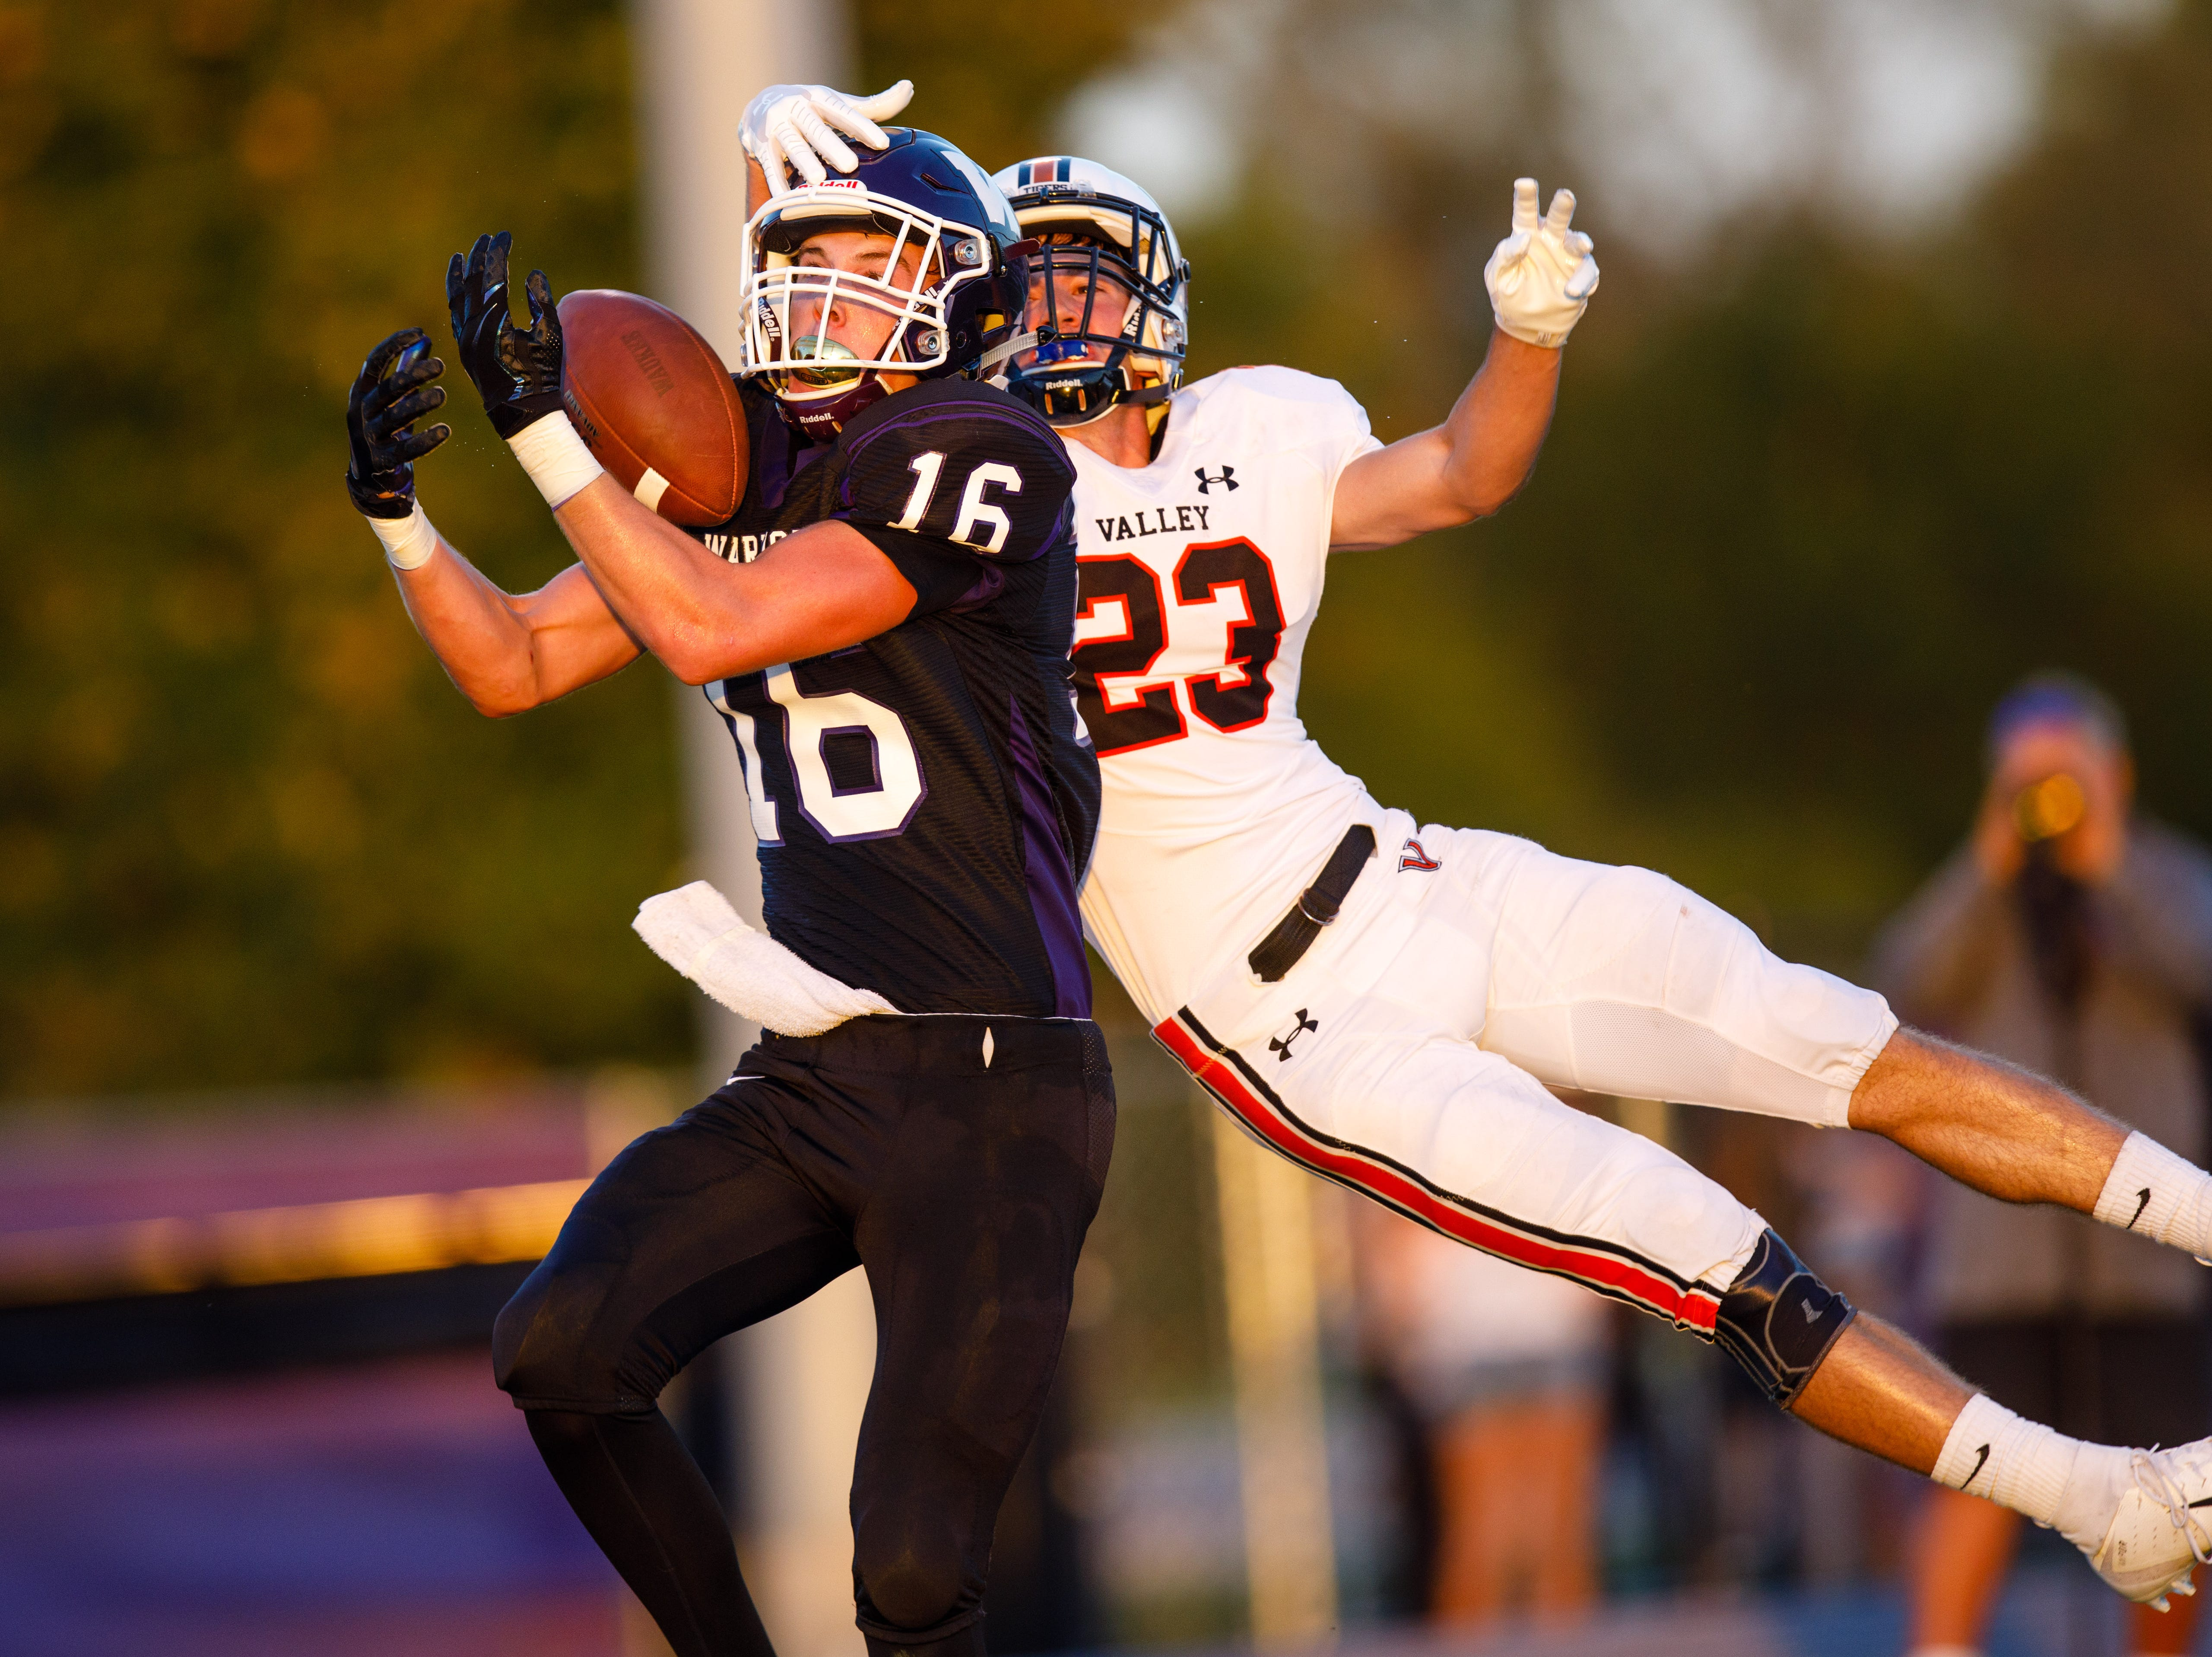 Waukee High School's Sam O'Dell (16) pulls in a pass ahead of Valley's Nathan Williams (23) in the first quarter Friday, Sept. 14, 2018, at Waukee Stadium.